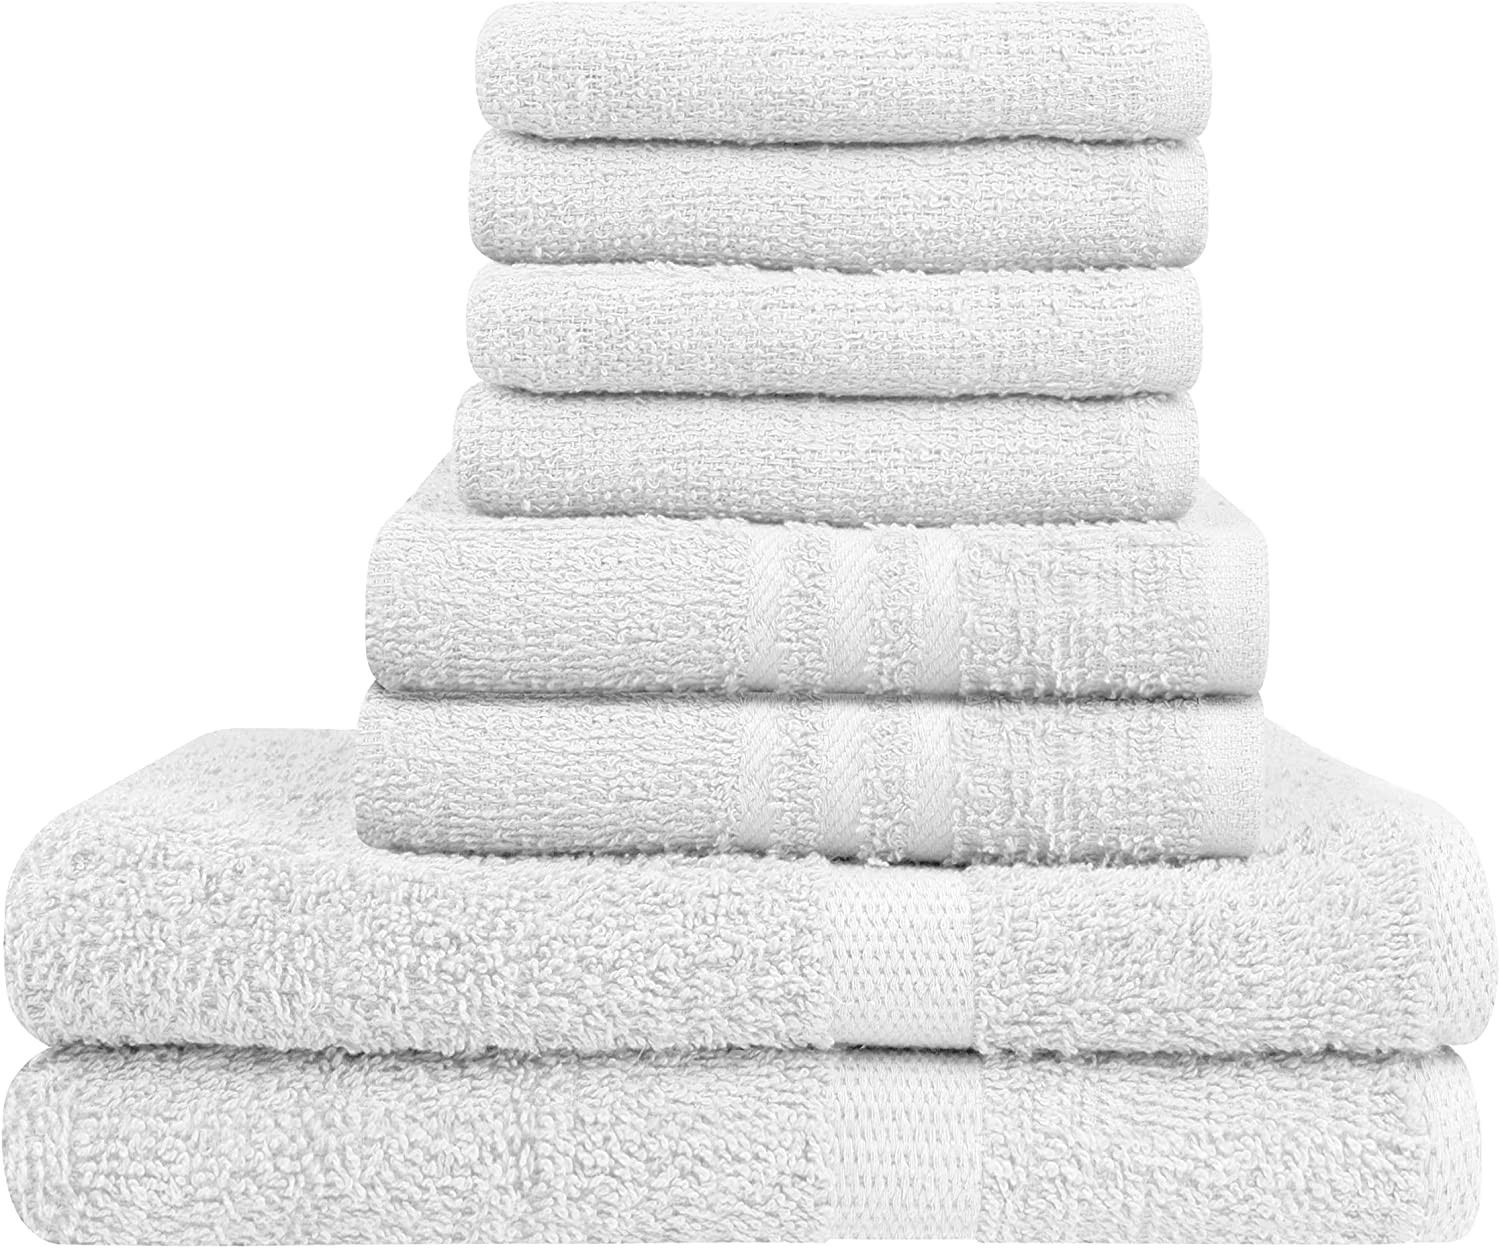 400 GSM Soft Bath Towel Egyptian Cotton 25x50 Inch Assorted Colors